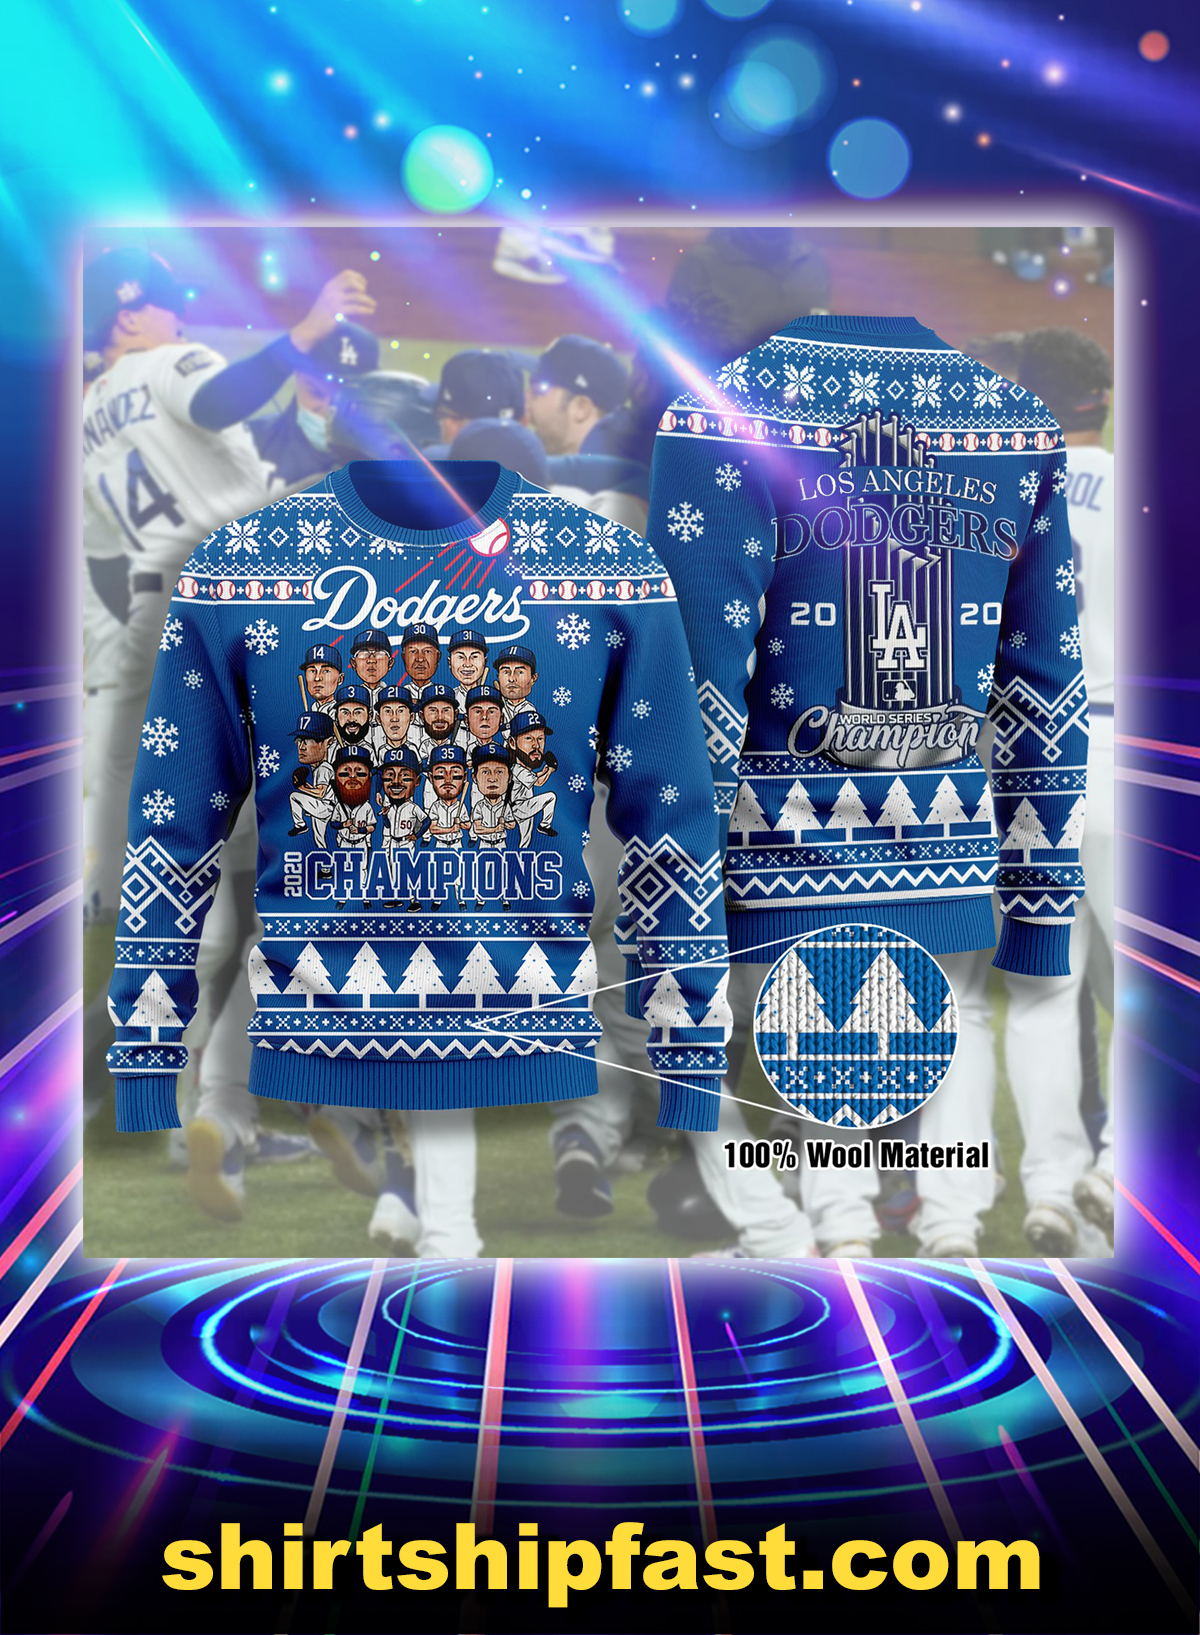 LA dodgers 2020 champions ugly christmas sweater - Picture 1